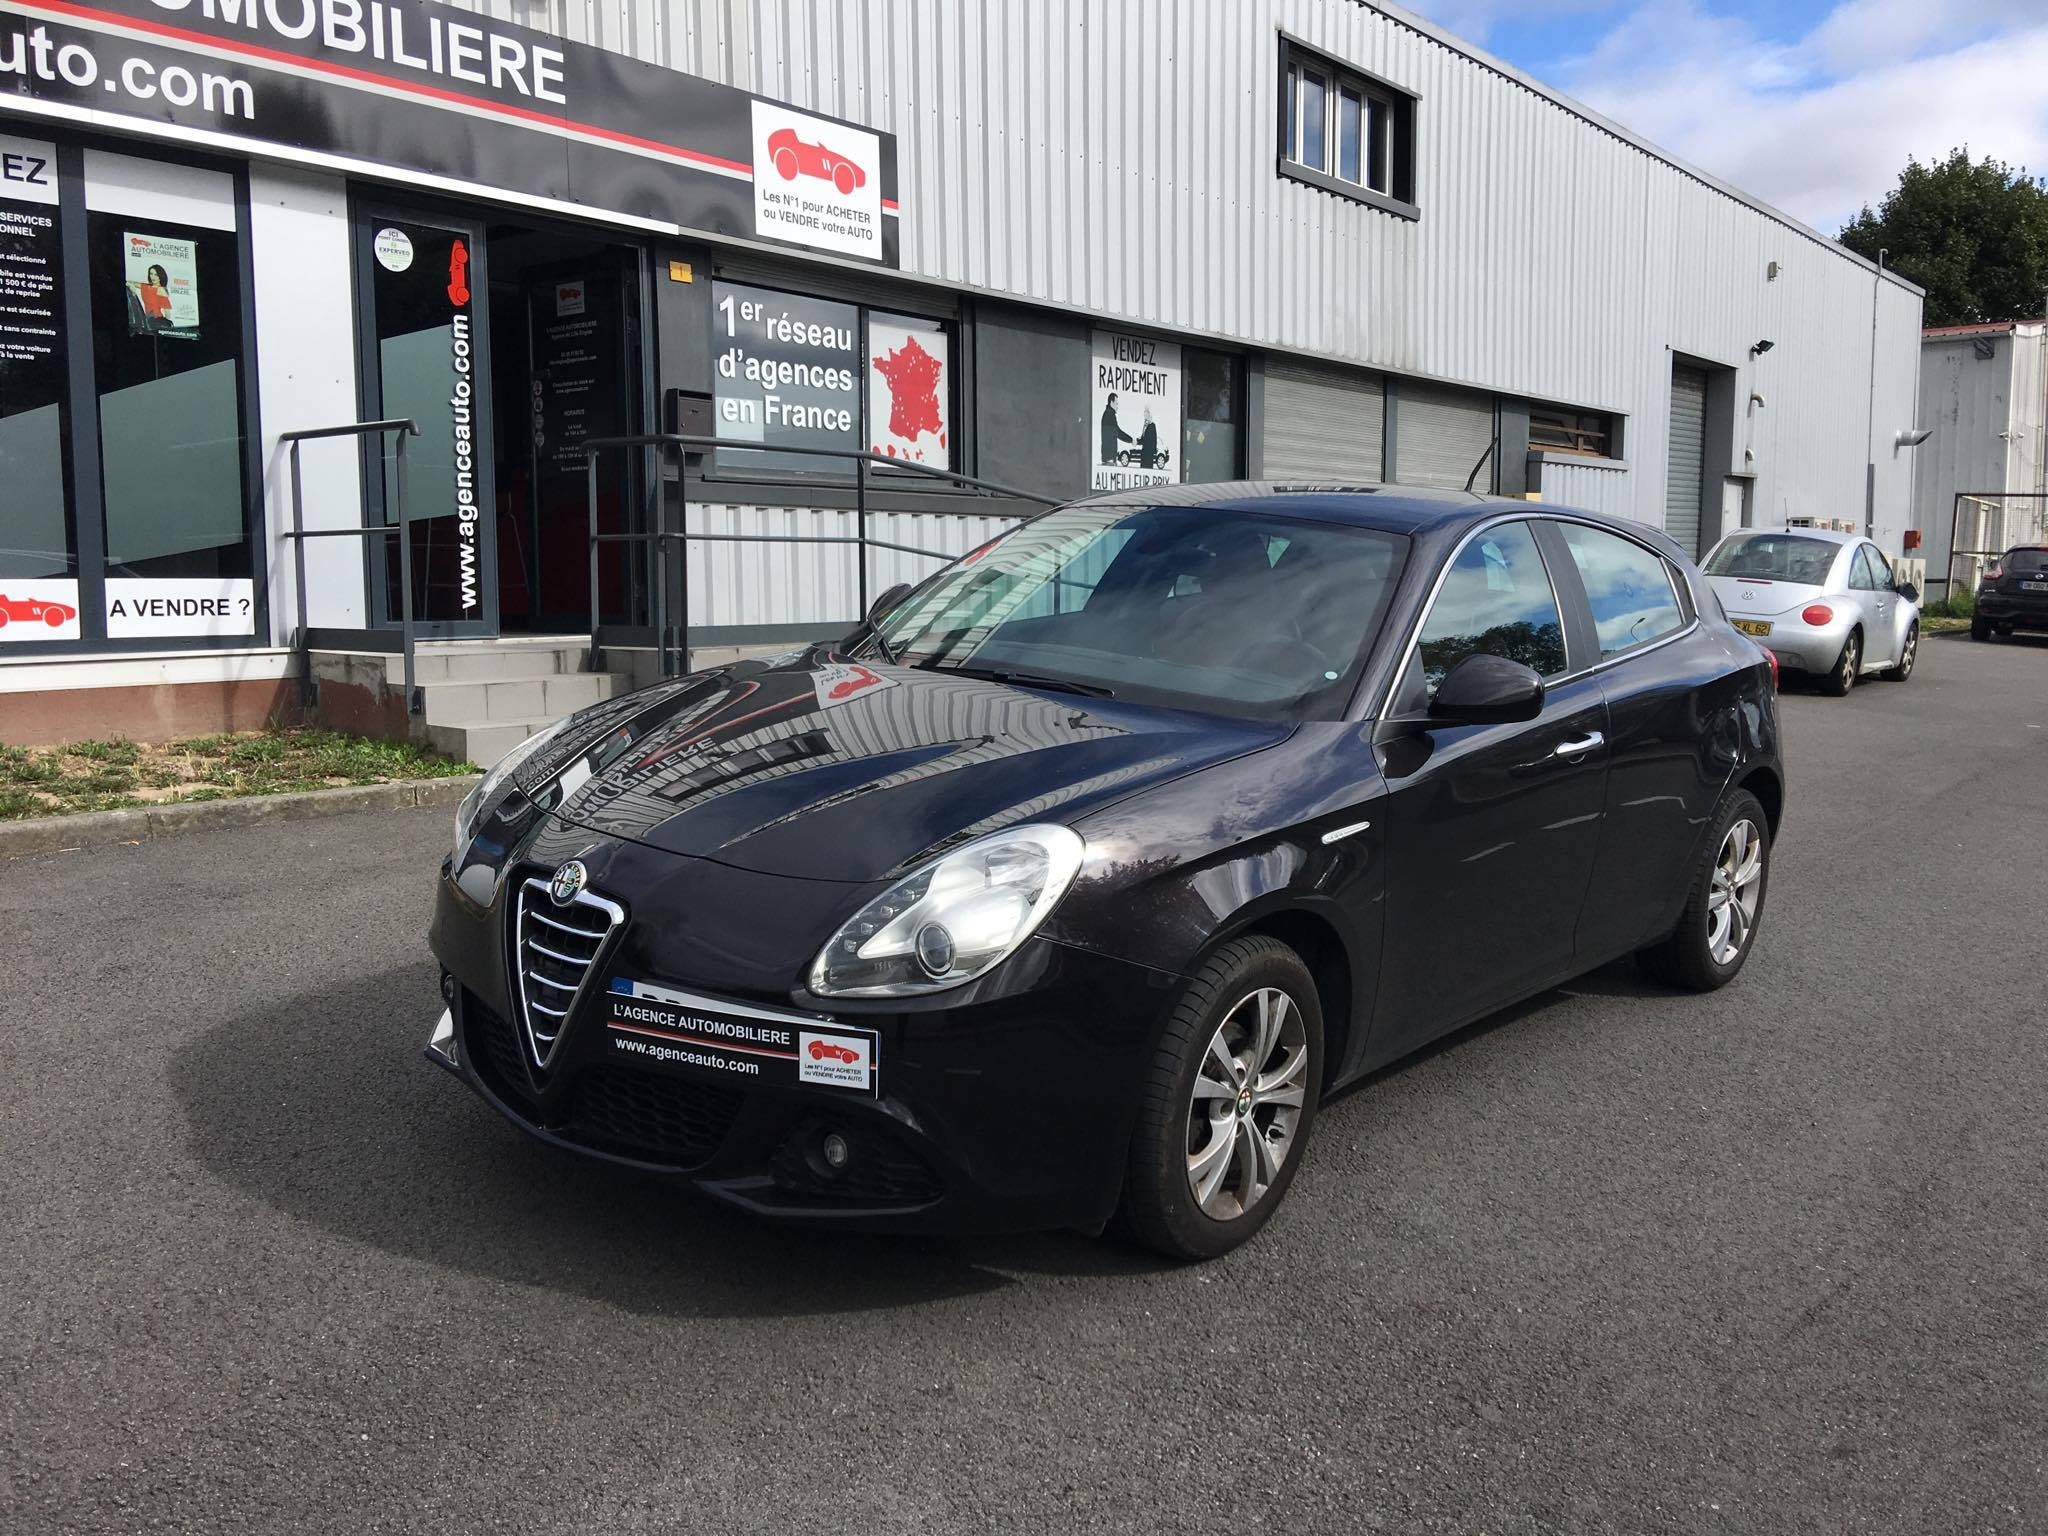 alfa romeo giulietta 1 6 jtdm 105 s s distinctive occasion lille englos pas cher voiture. Black Bedroom Furniture Sets. Home Design Ideas